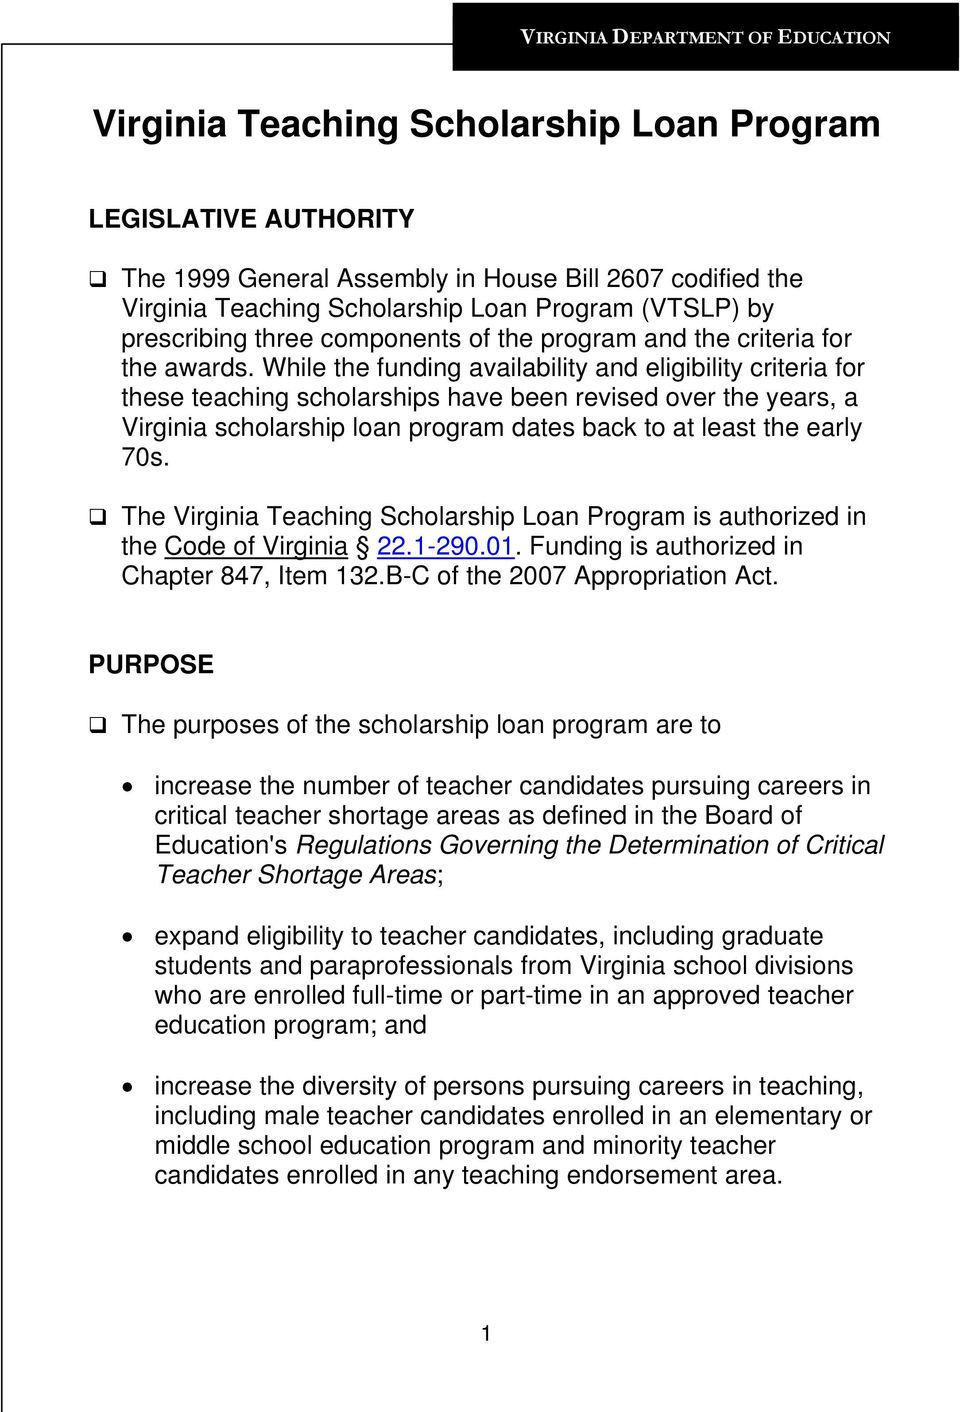 While the funding availability and eligibility criteria for these teaching scholarships have been revised over the years, a Virginia scholarship loan program dates back to at least the early 70s.